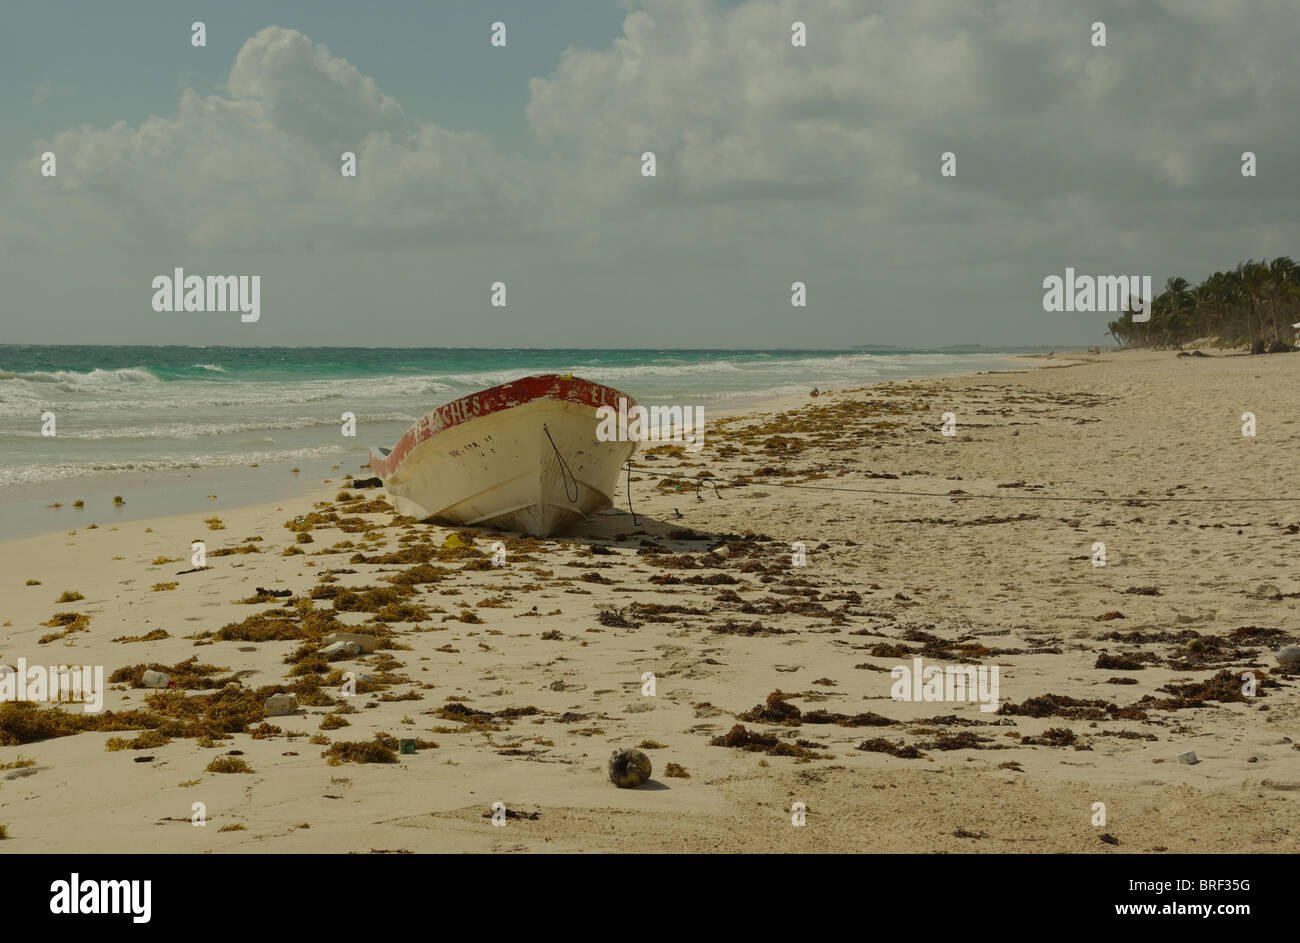 Weathered boat with peeling paint tied on windswept sandy beach in Tulum Mexico.Biosphere in distance with fluffy - Stock Image